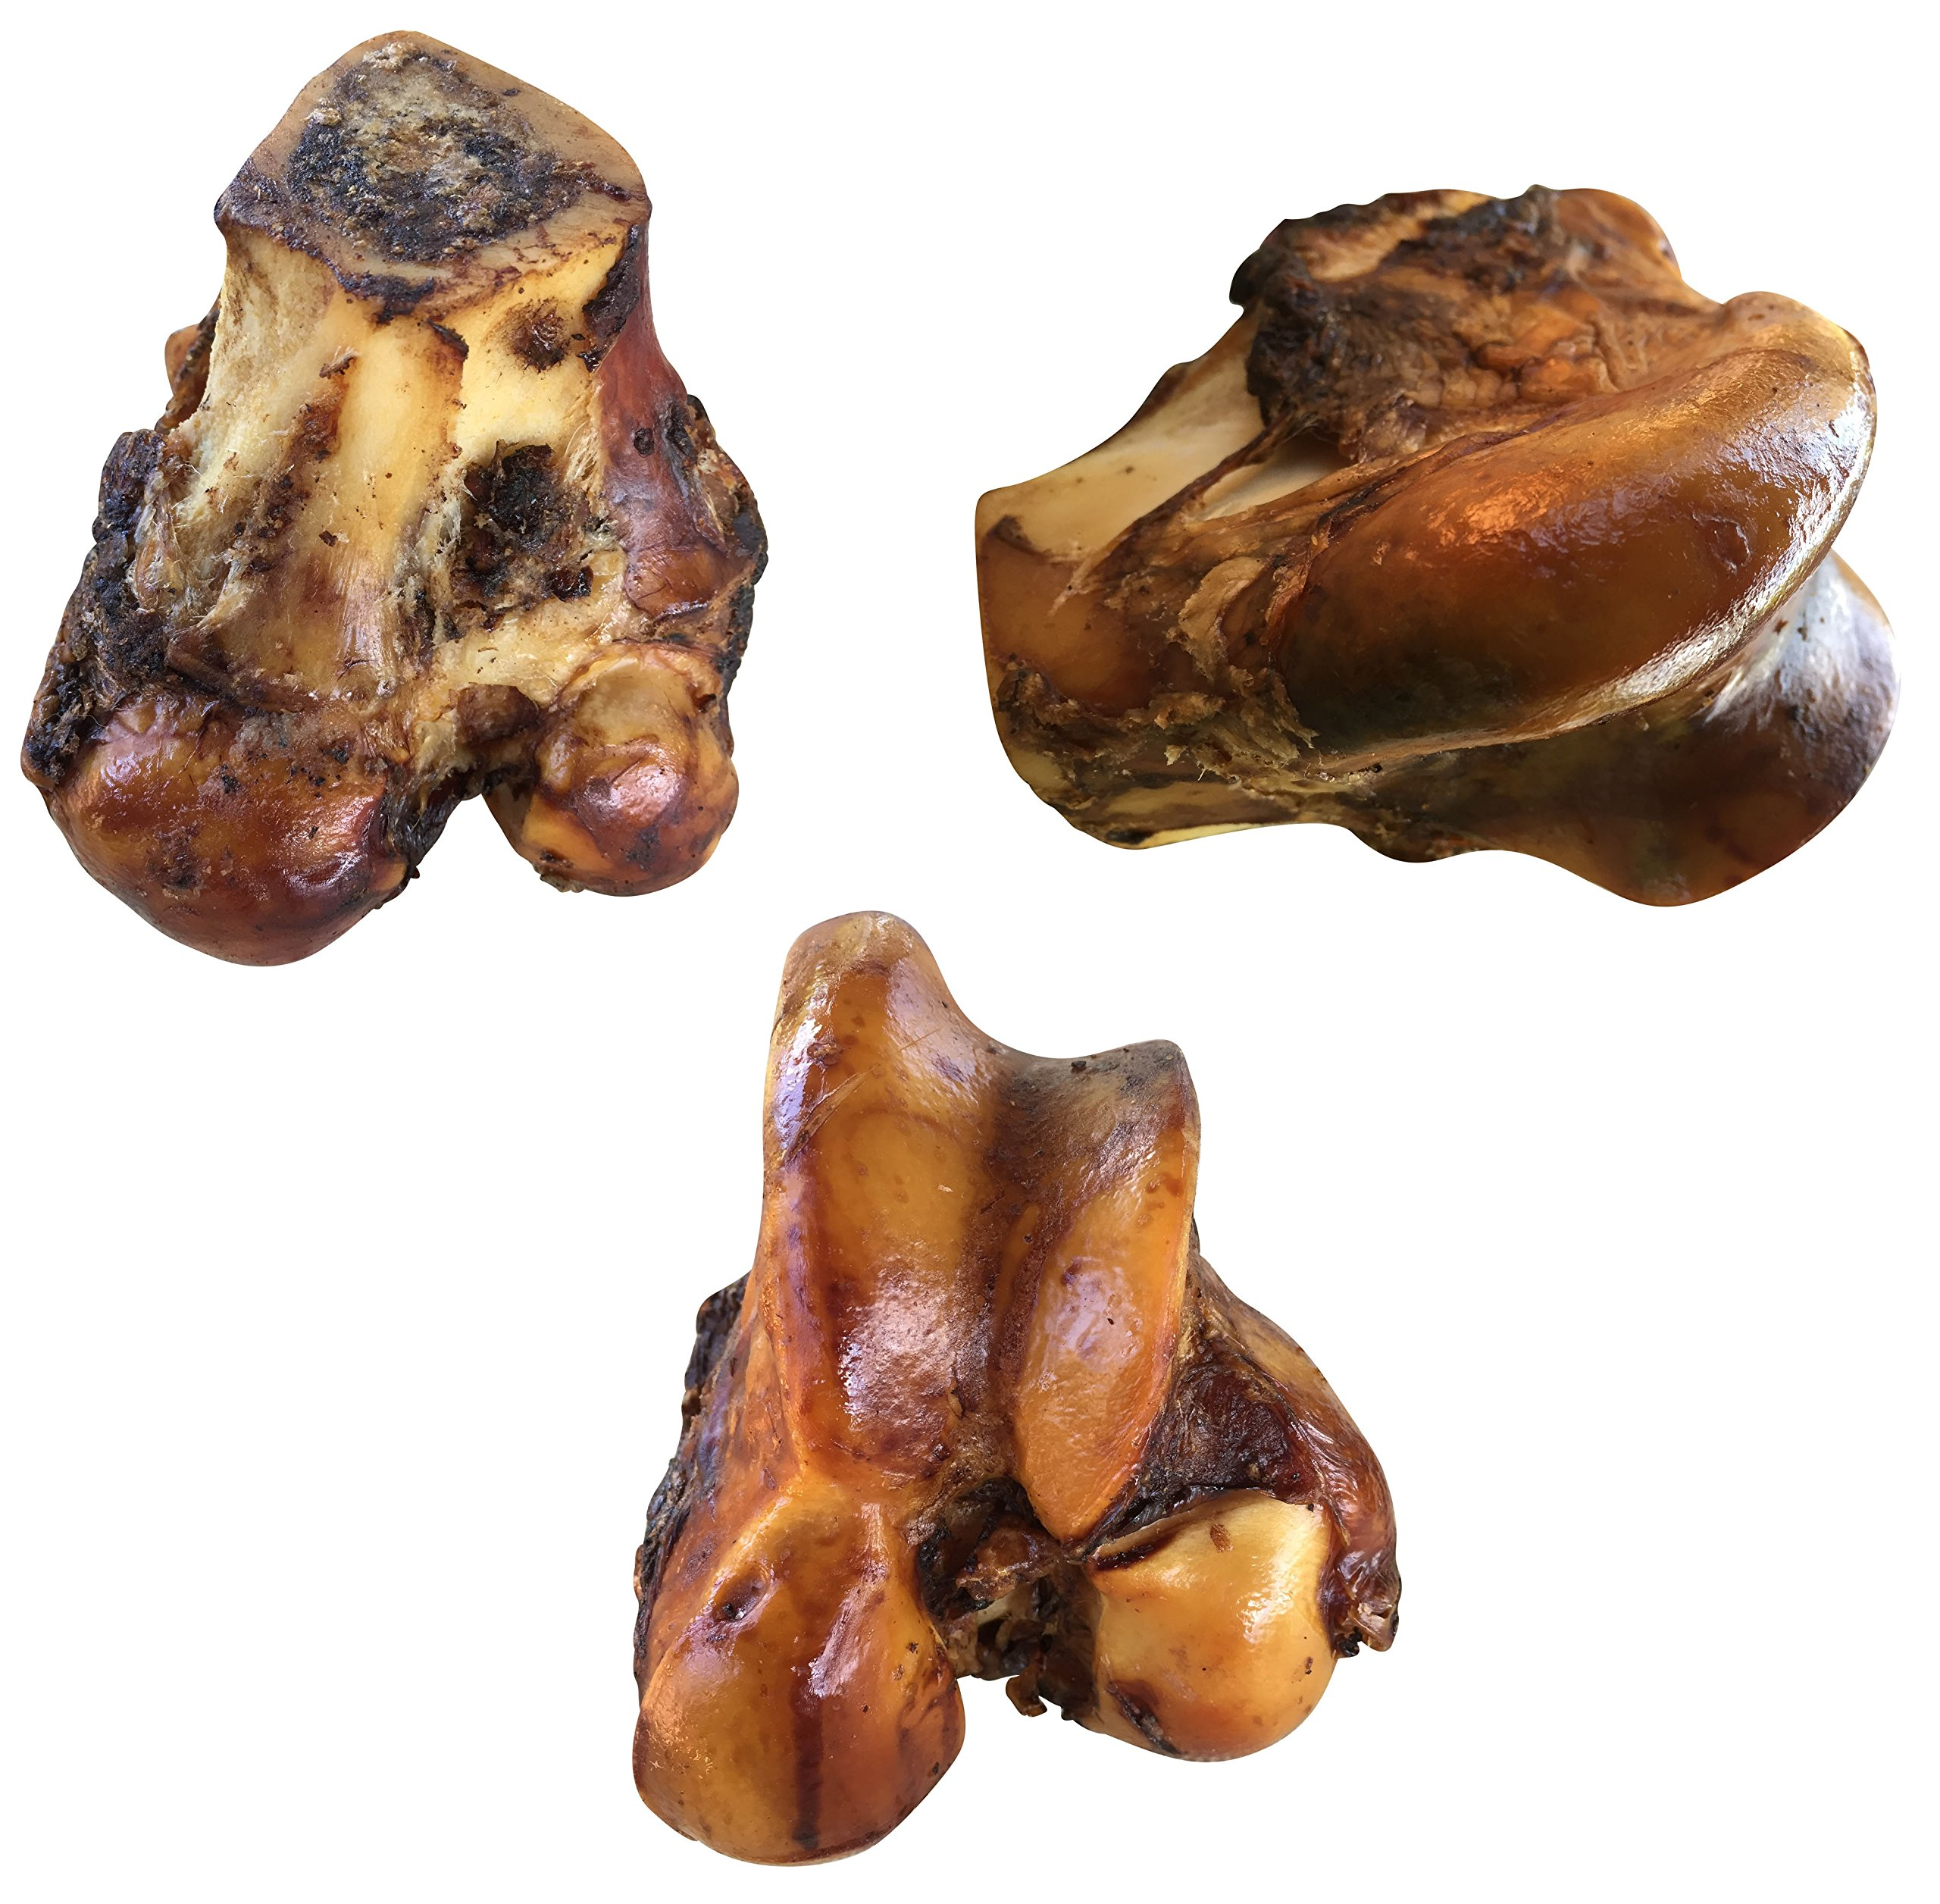 K9 Connoisseur Formerly Lillys Choice Dog Bones Made In USA For Large Breed Aggressive Chewers All Natural Long Lasting Meaty Mammoth Marrow Filled Bone Chew Treat Best For Dogs Over 50 Pounds 3 Pack